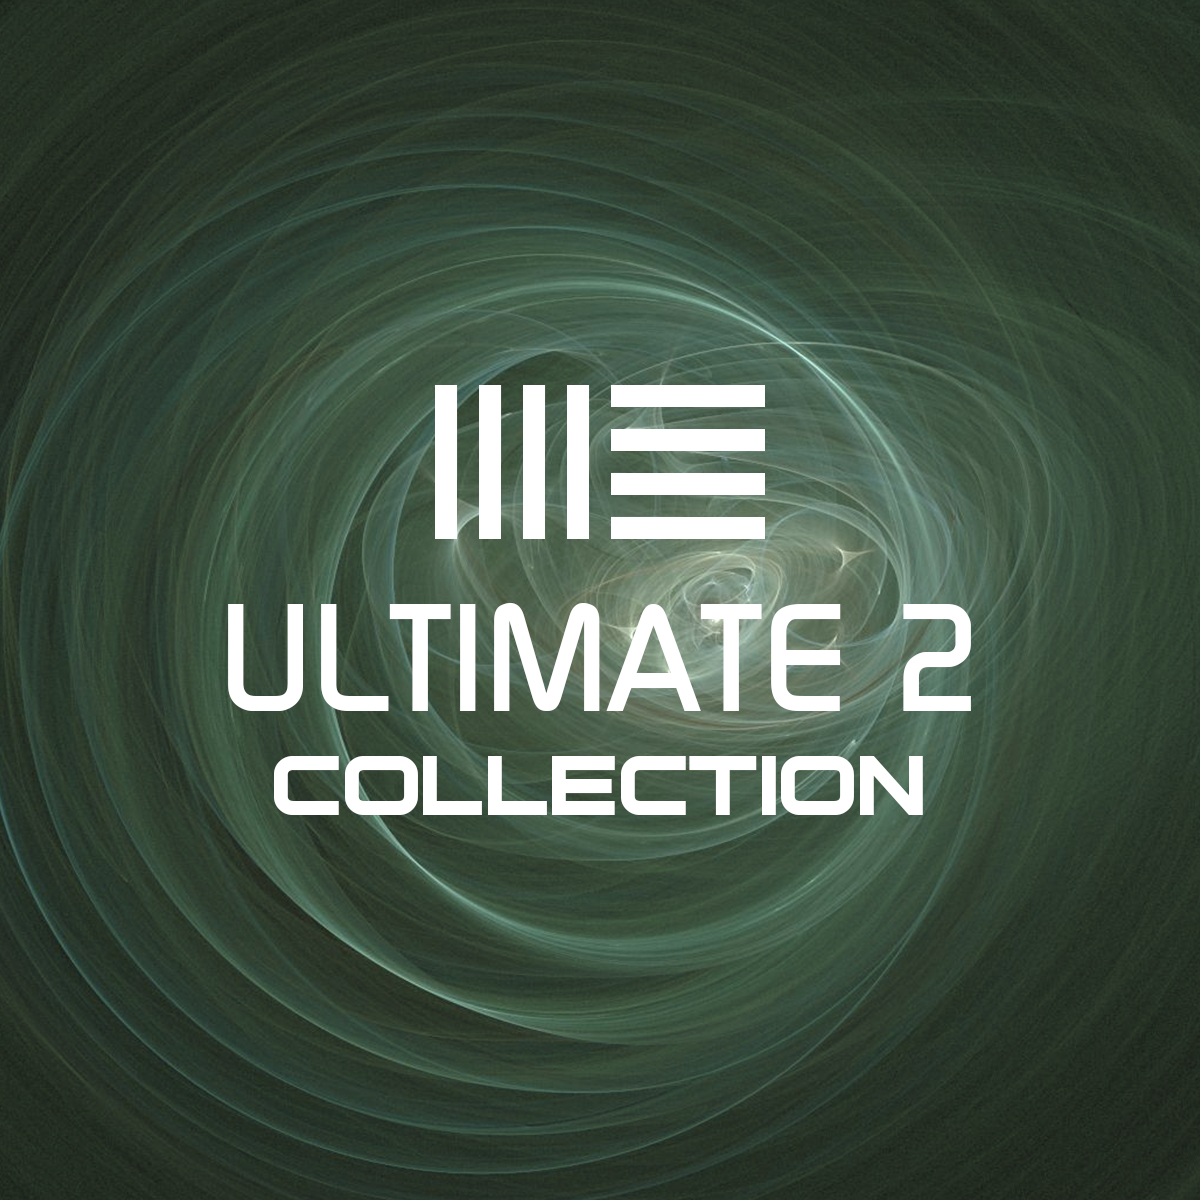 Ultimate Ableton Collection 2